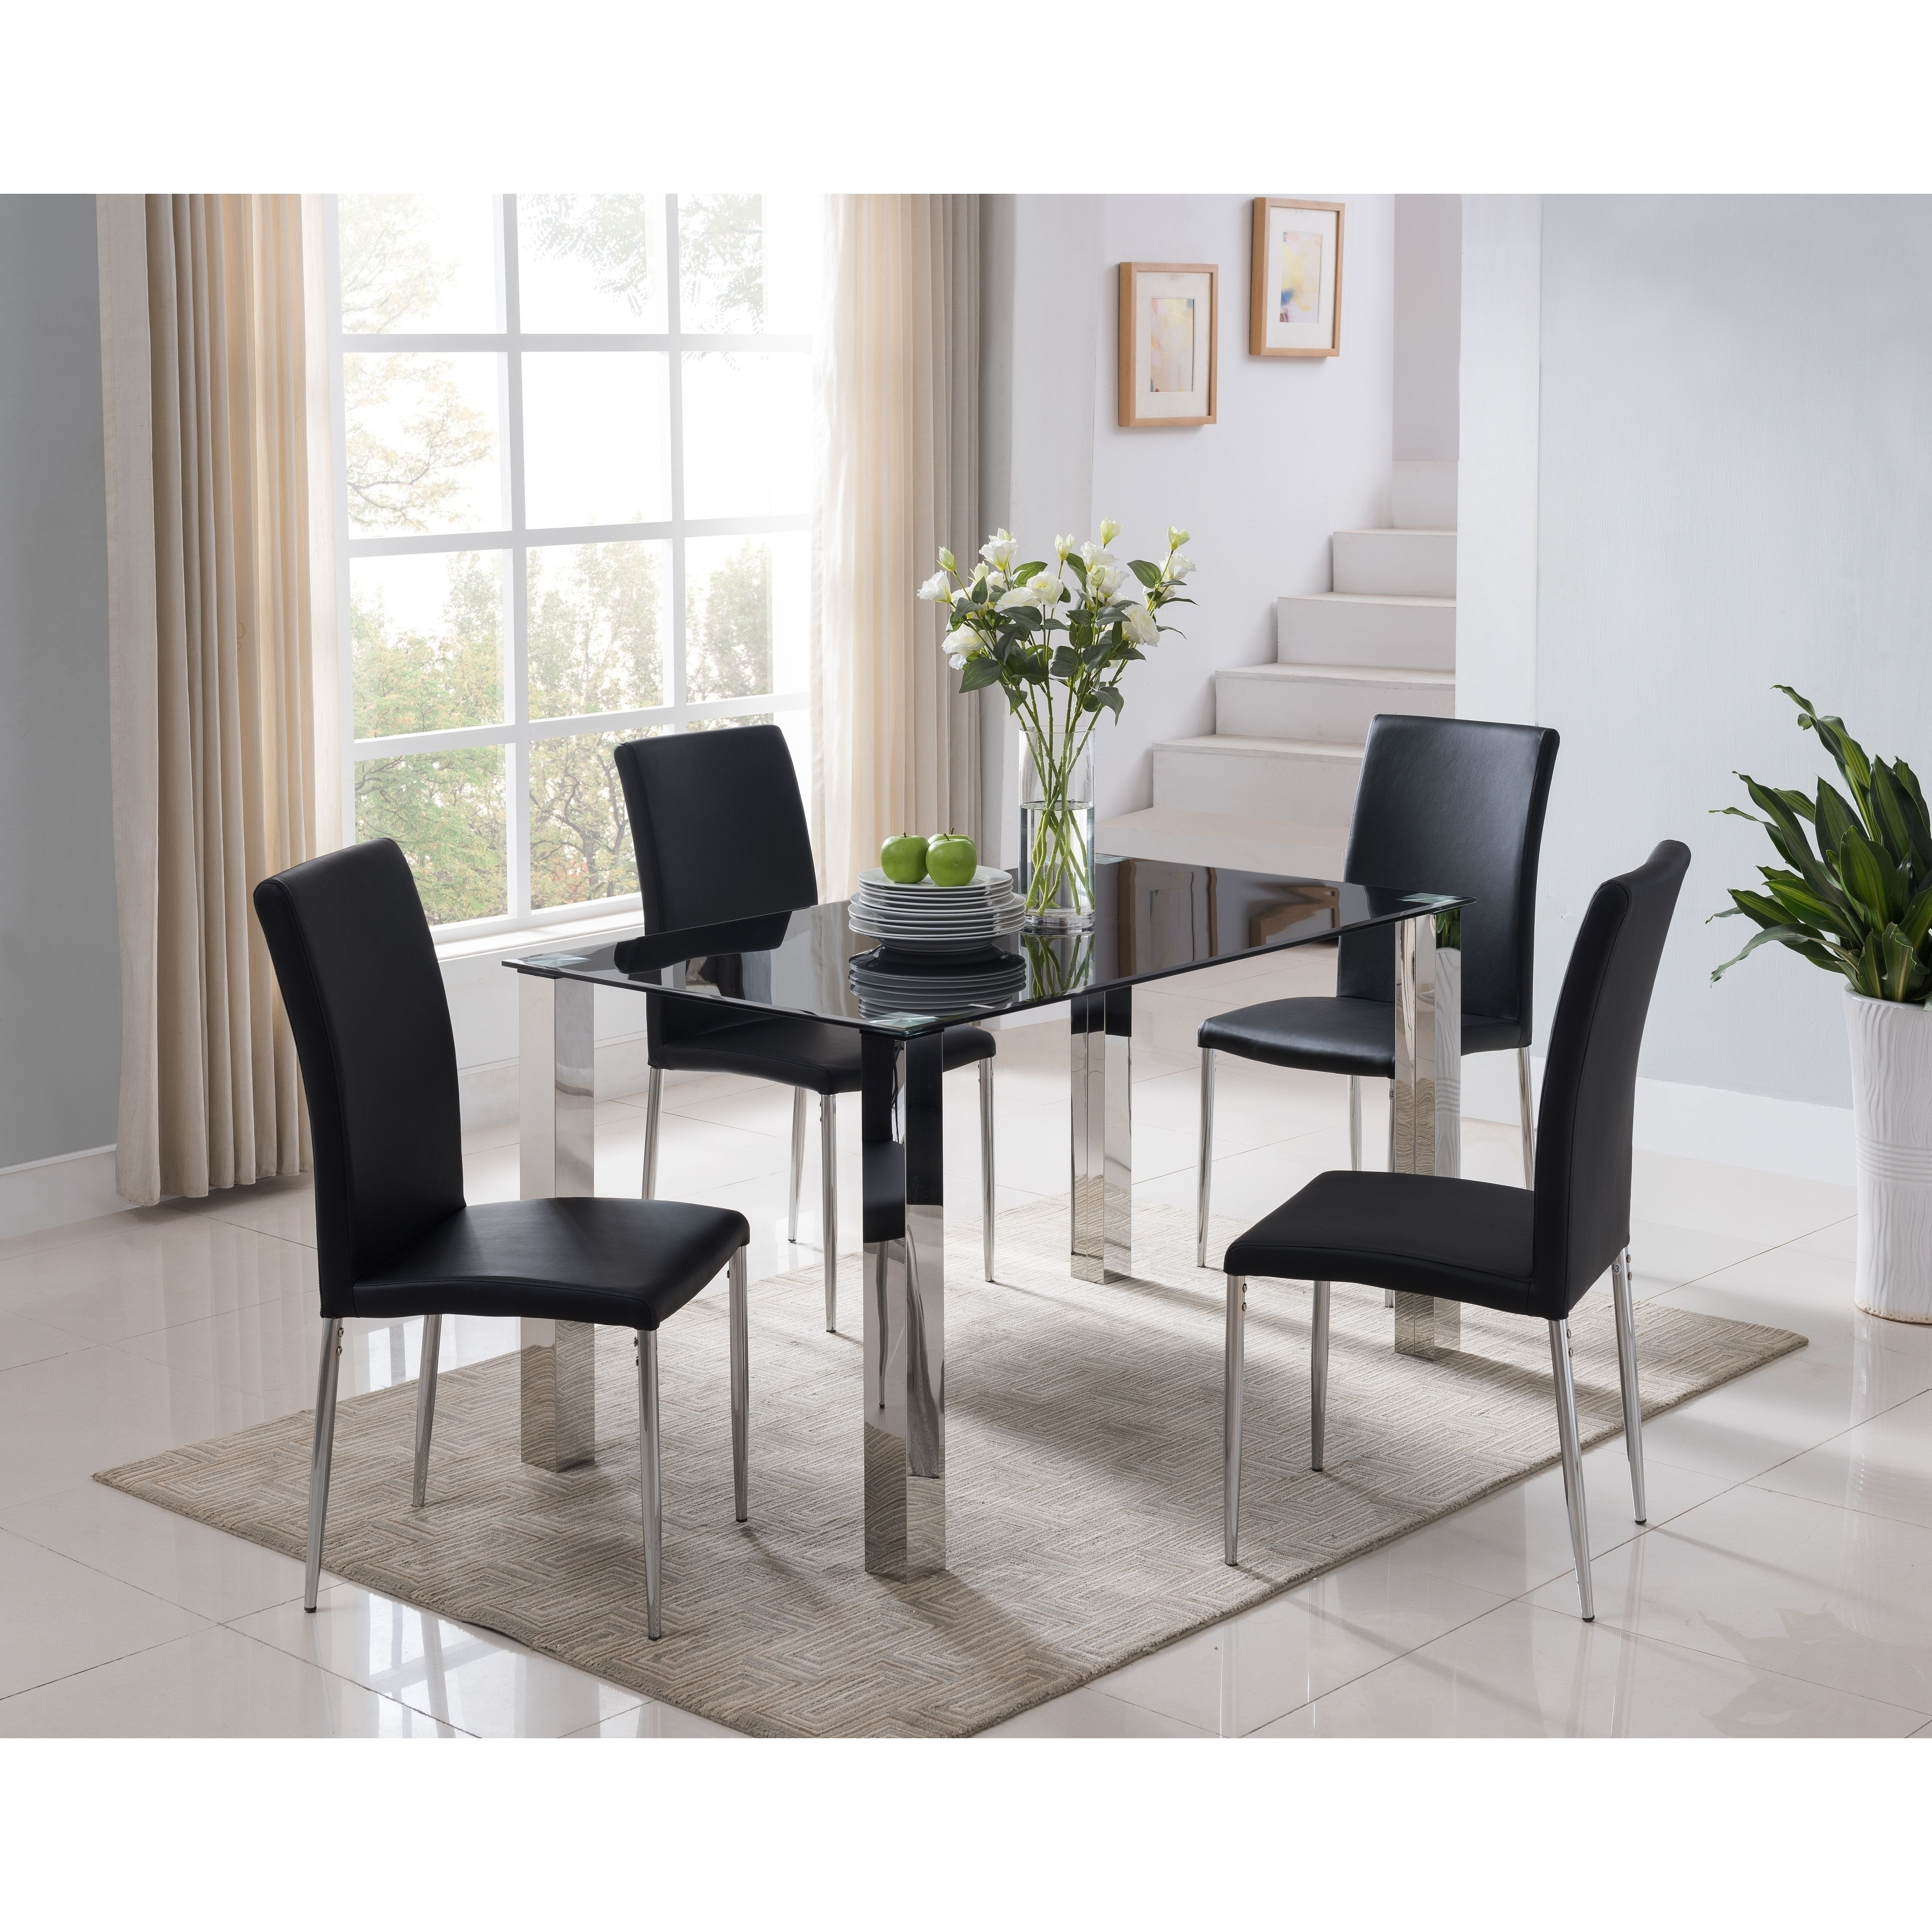 dc0855ab45348e Buy Set of 4 Kitchen & Dining Room Chairs Online at Overstock | Our Best  Dining Room & Bar Furniture Deals